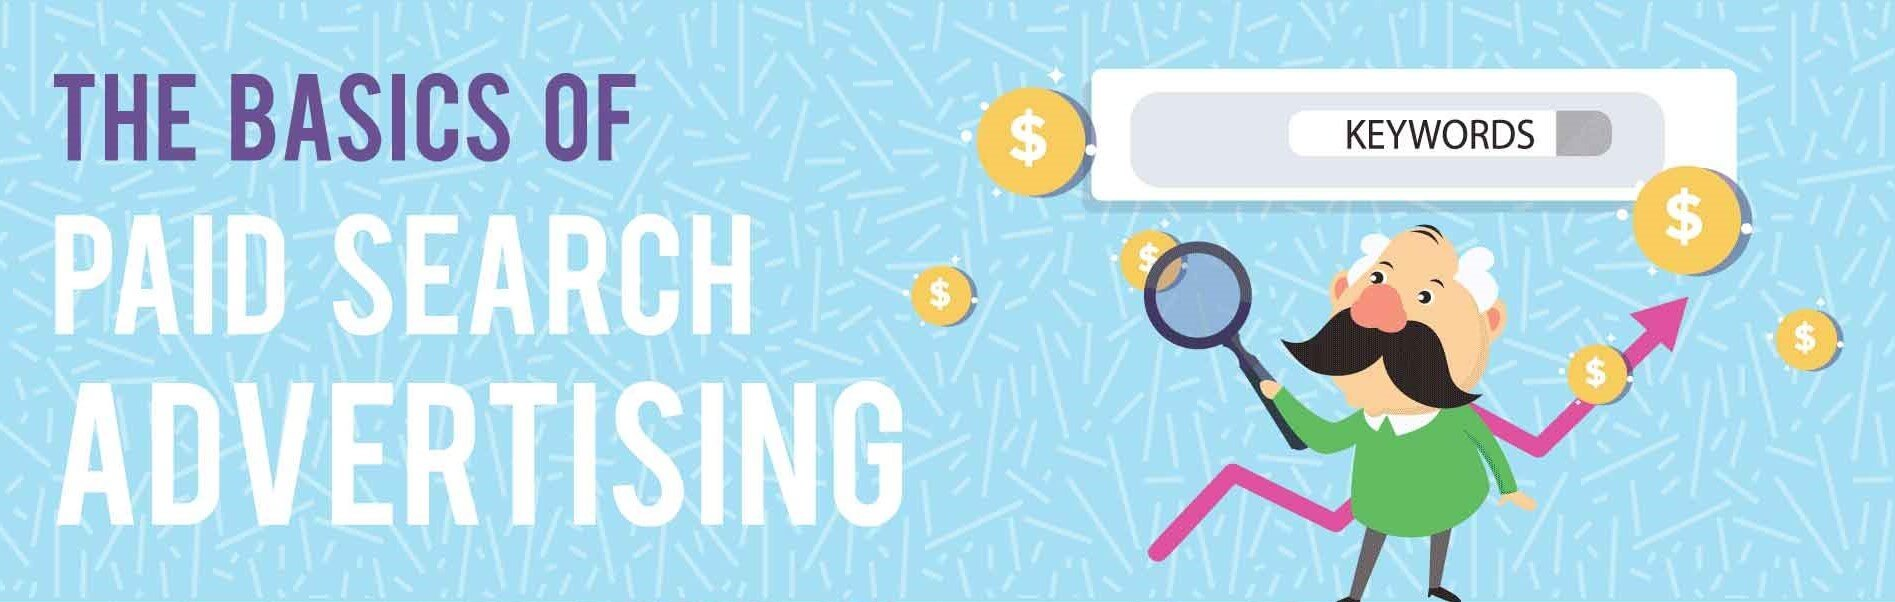 Basics of paid search advertising